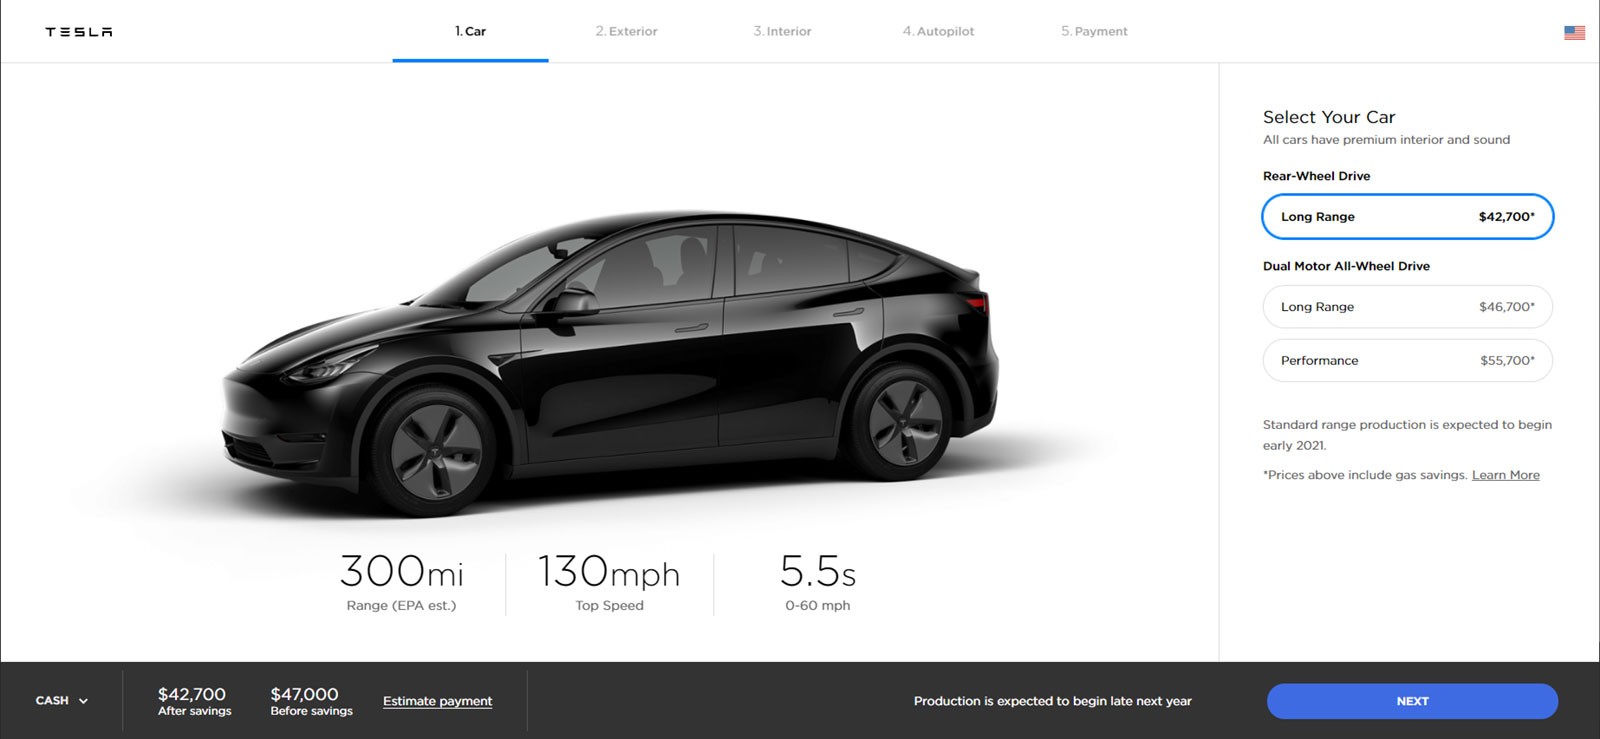 58b6e283c29f82 Here you can check the specifications of Tesla models currently available  and compare them with what is known about Model Y at present.